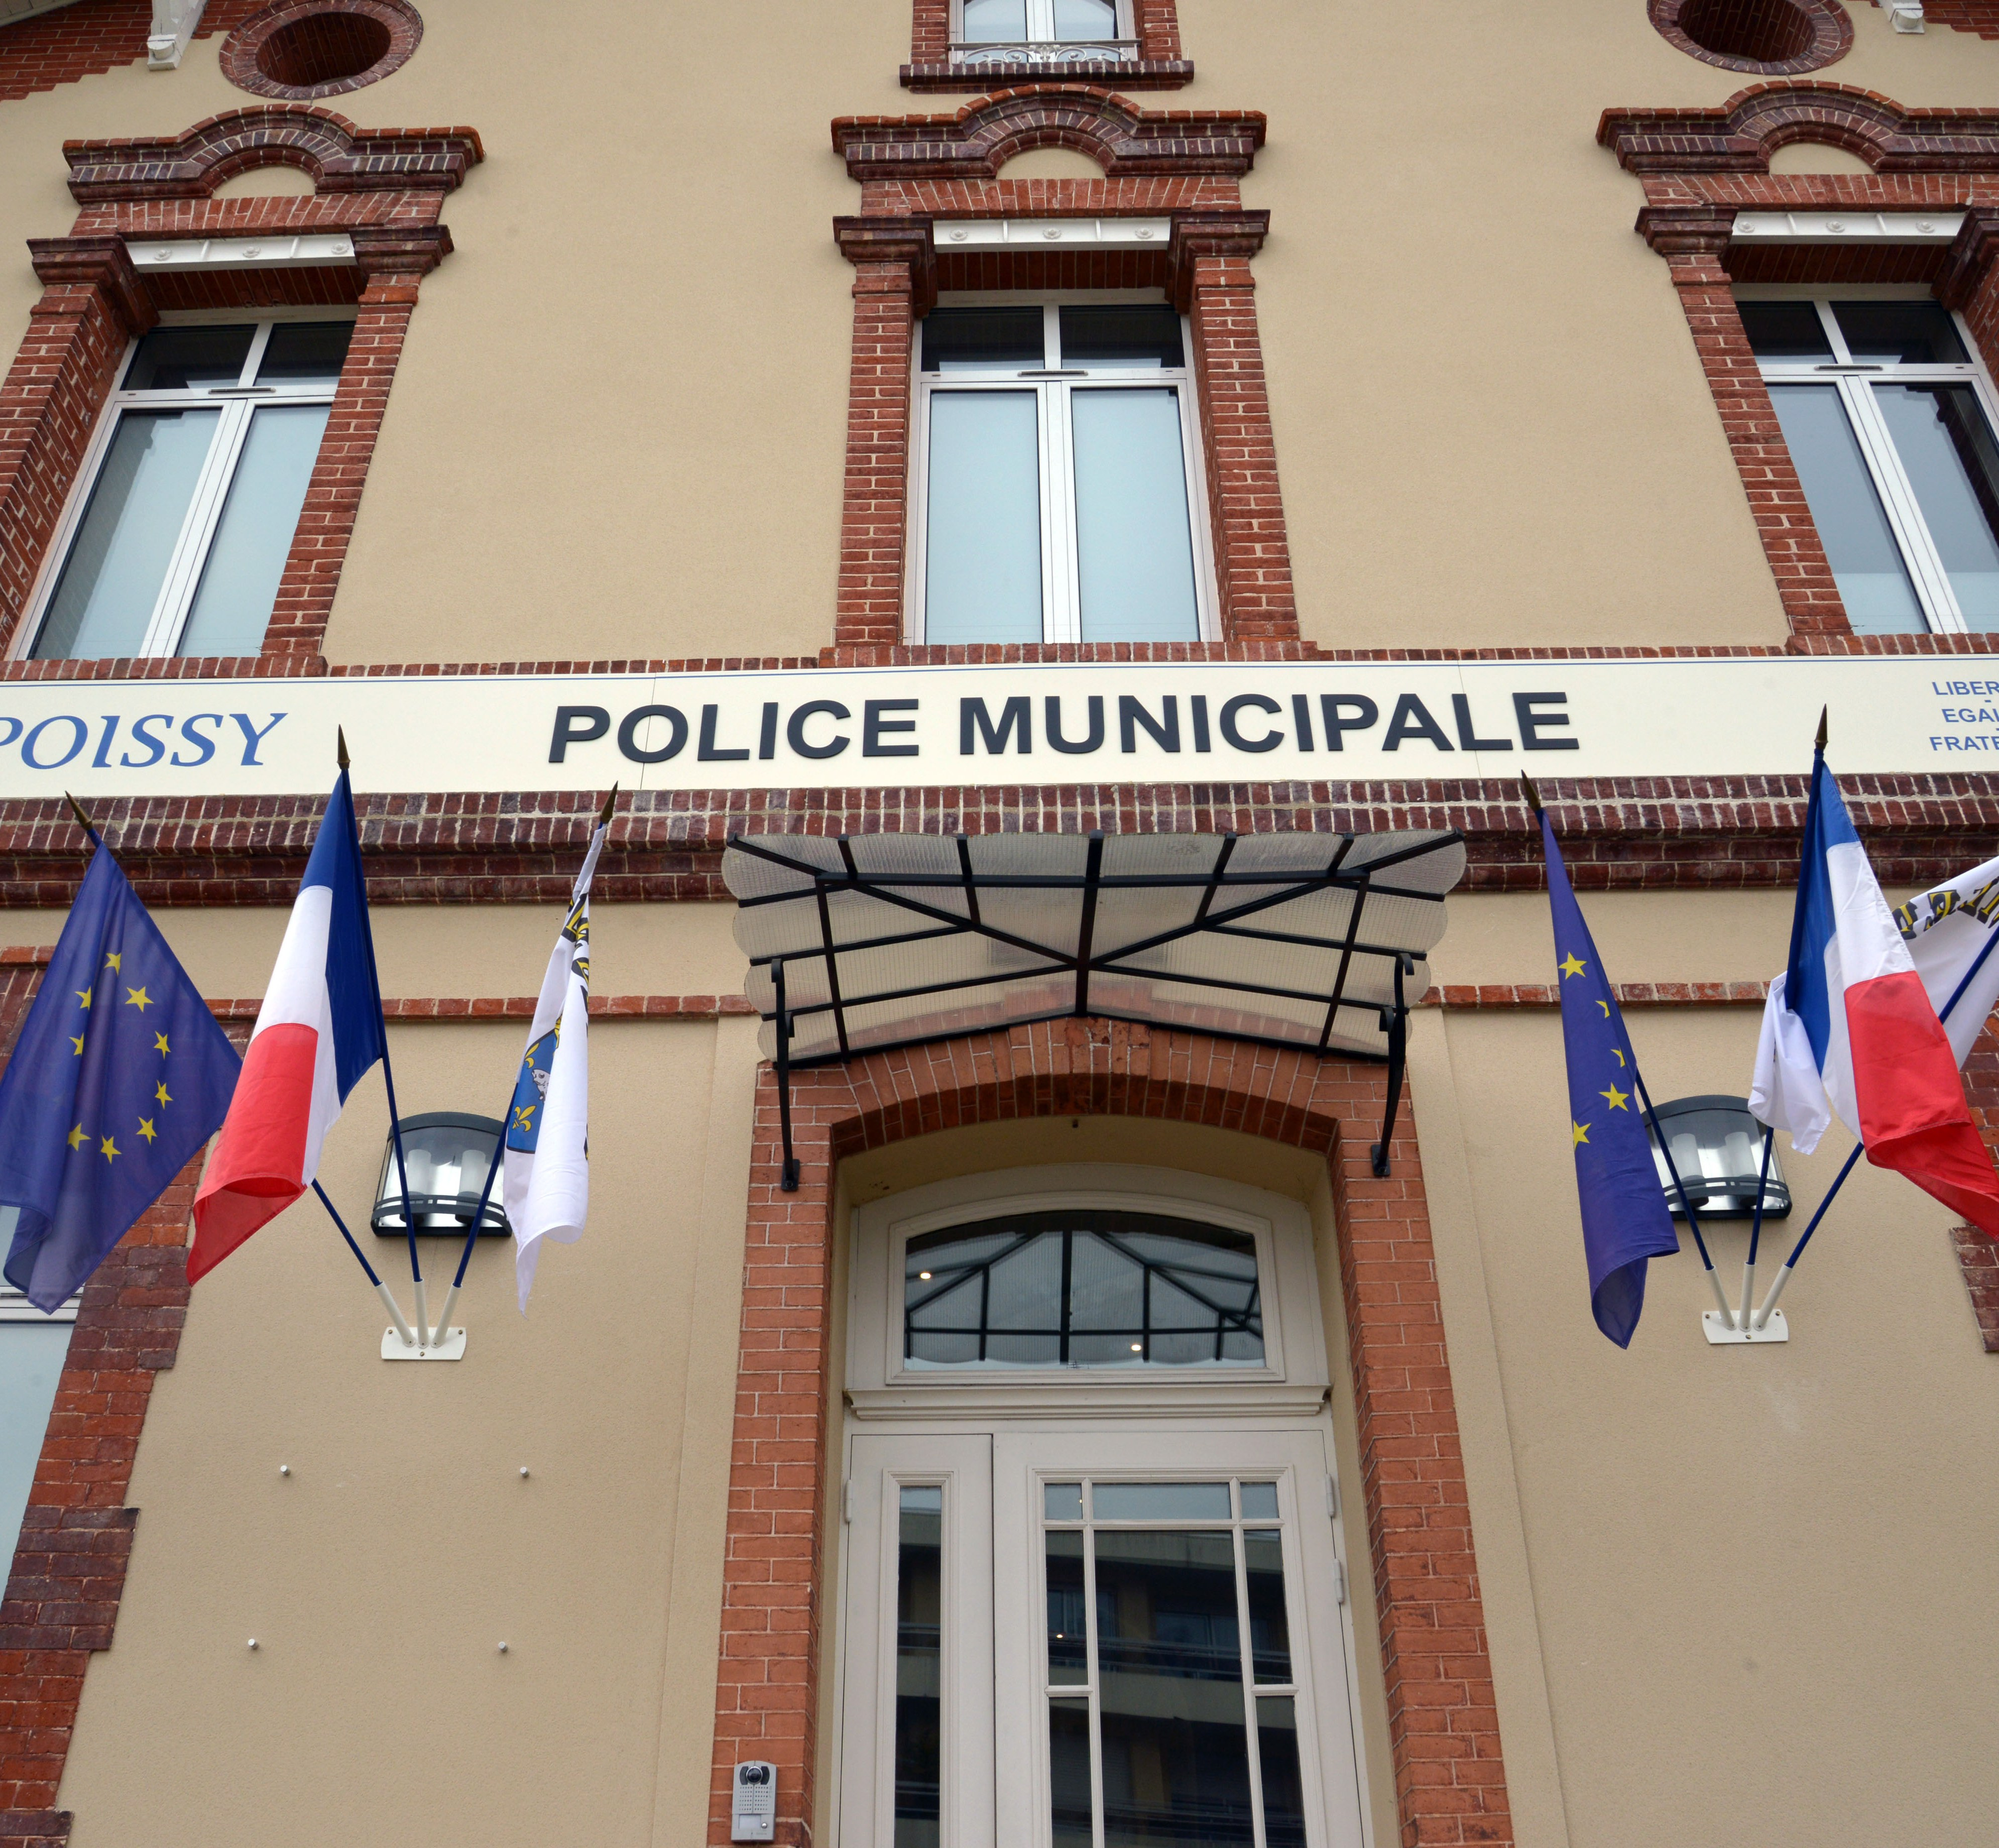 Inauguration Maison PM Police Municipale Photo Franck Stromme Service Communication 2015 086